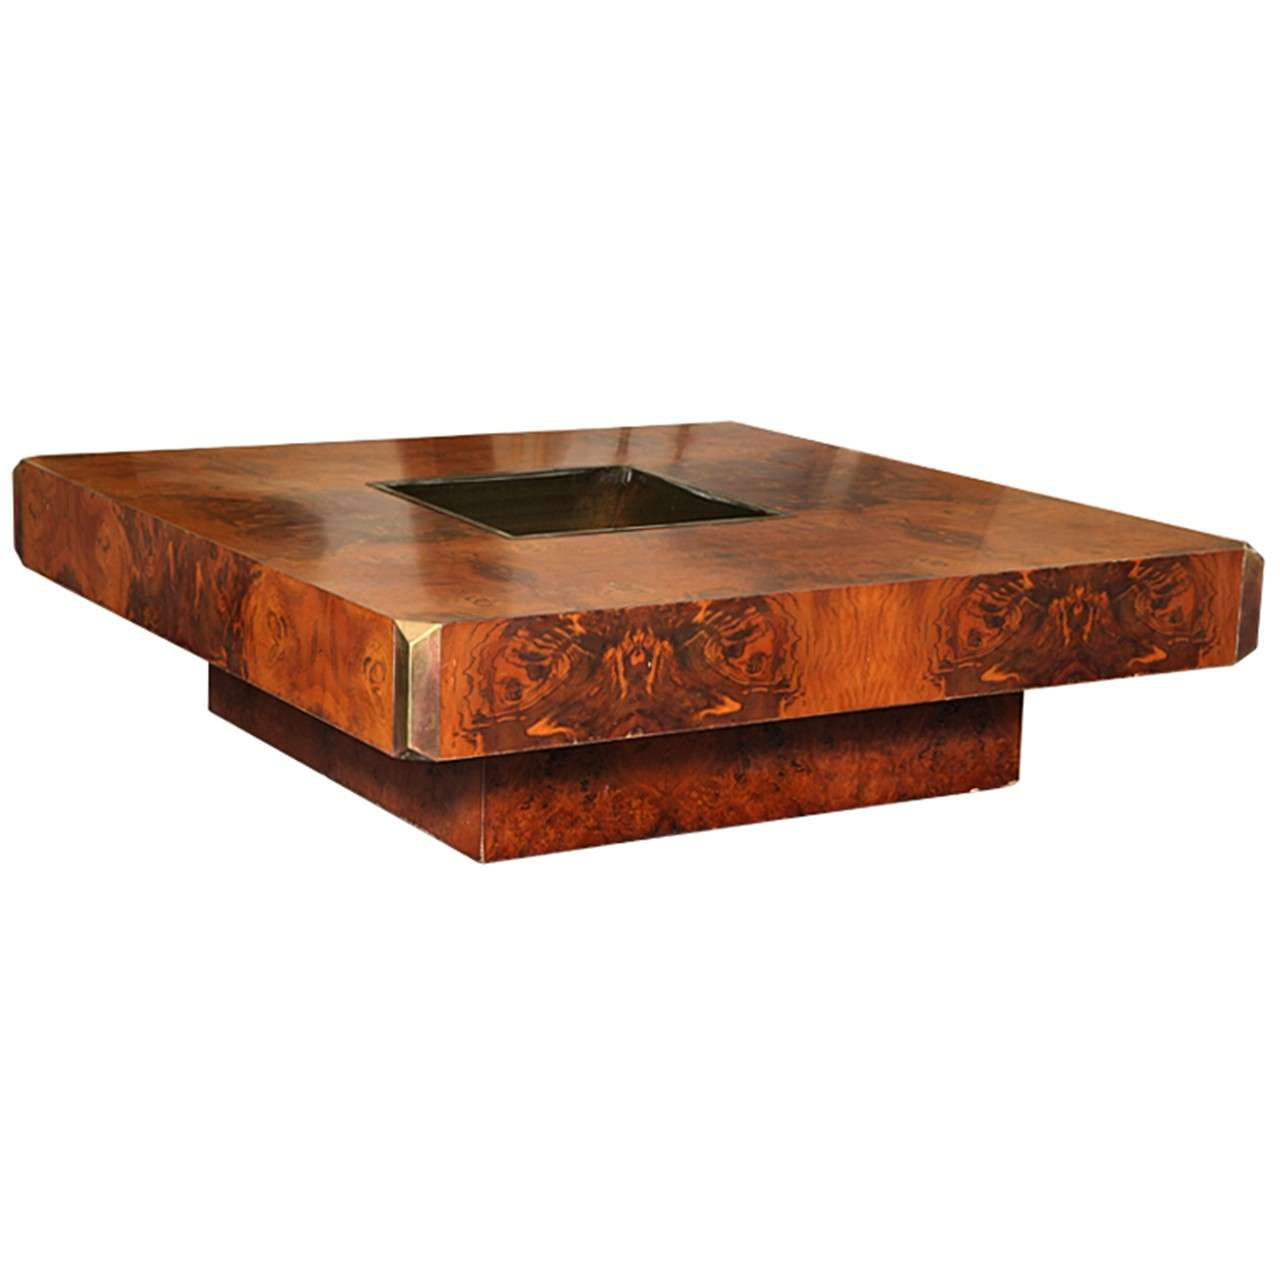 Willy rizzo coffee table at 1stdibs for Table willy rizzo